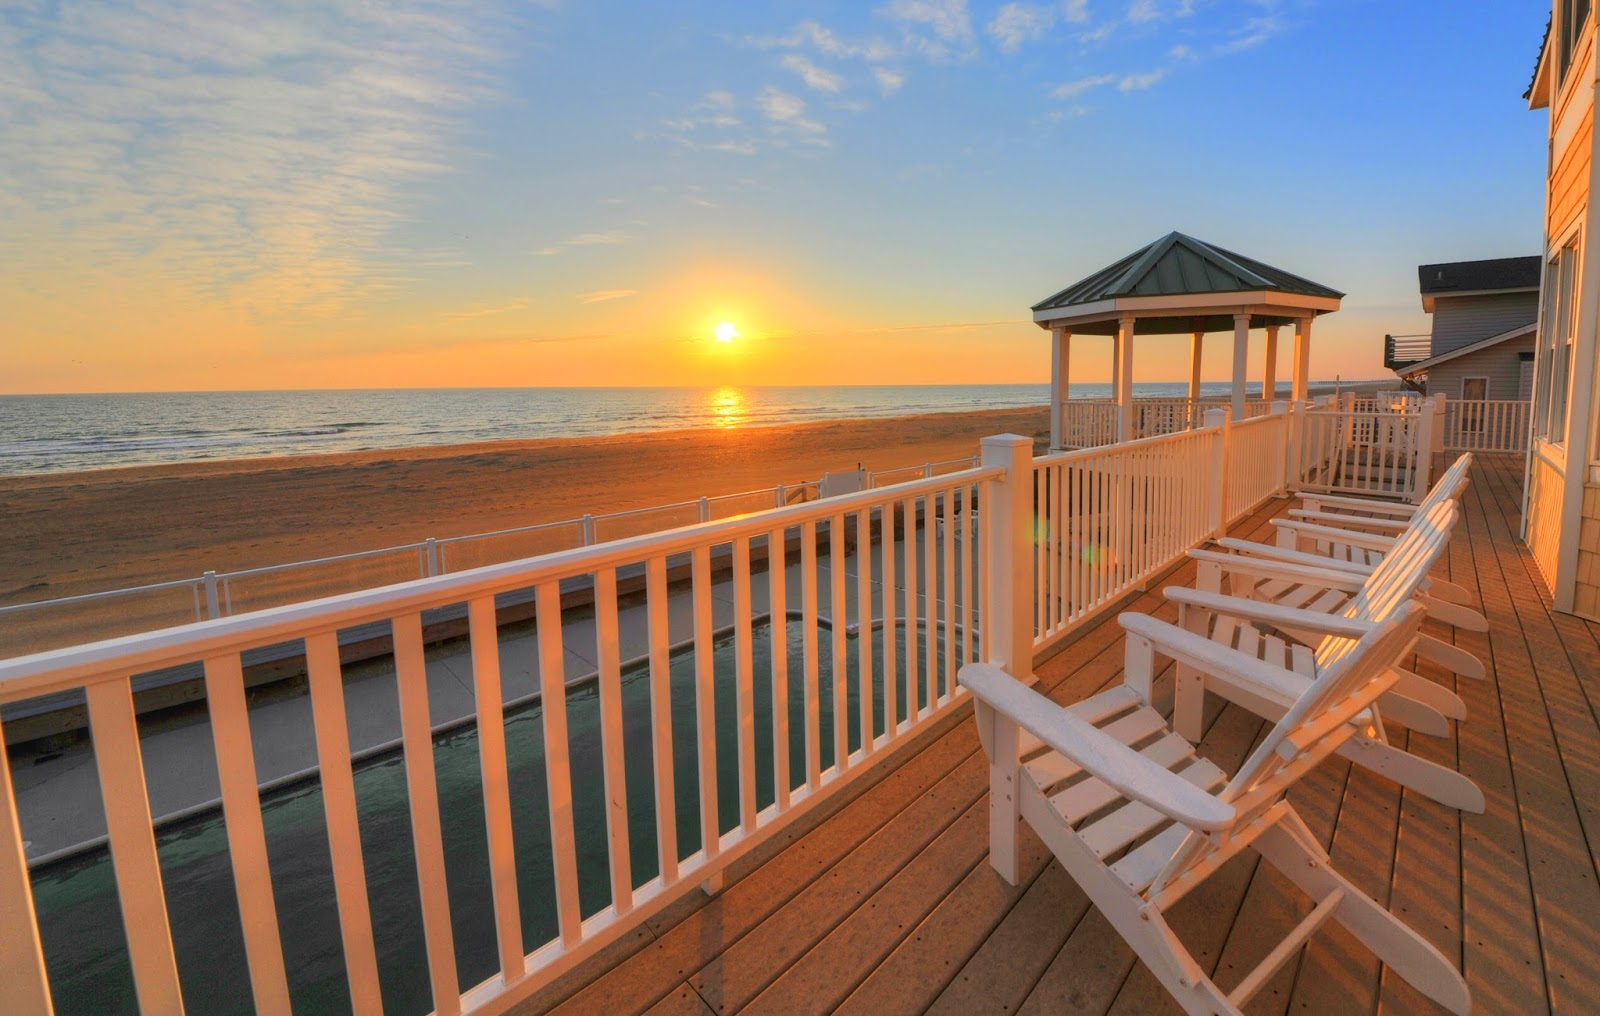 Siebert Realty Sandbridge Beach Virginia Beach Rentals Va